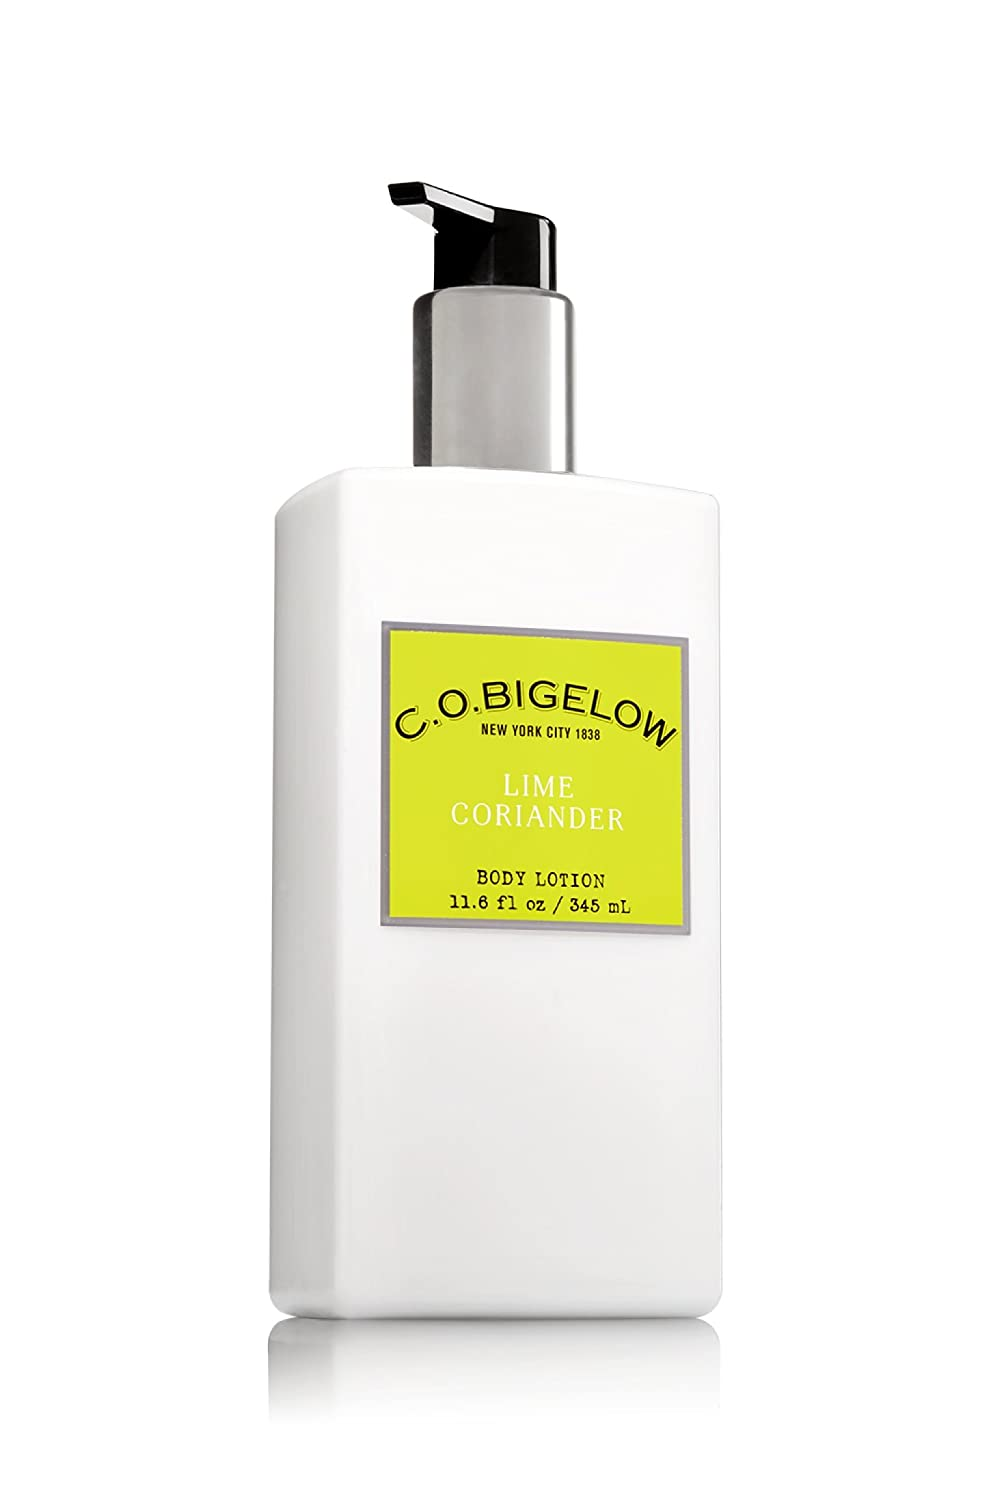 C.O. Bigelow Bath and Body WorksLime Coriander Body Lotion 11.6 Ounce Full Size Pump Bottle